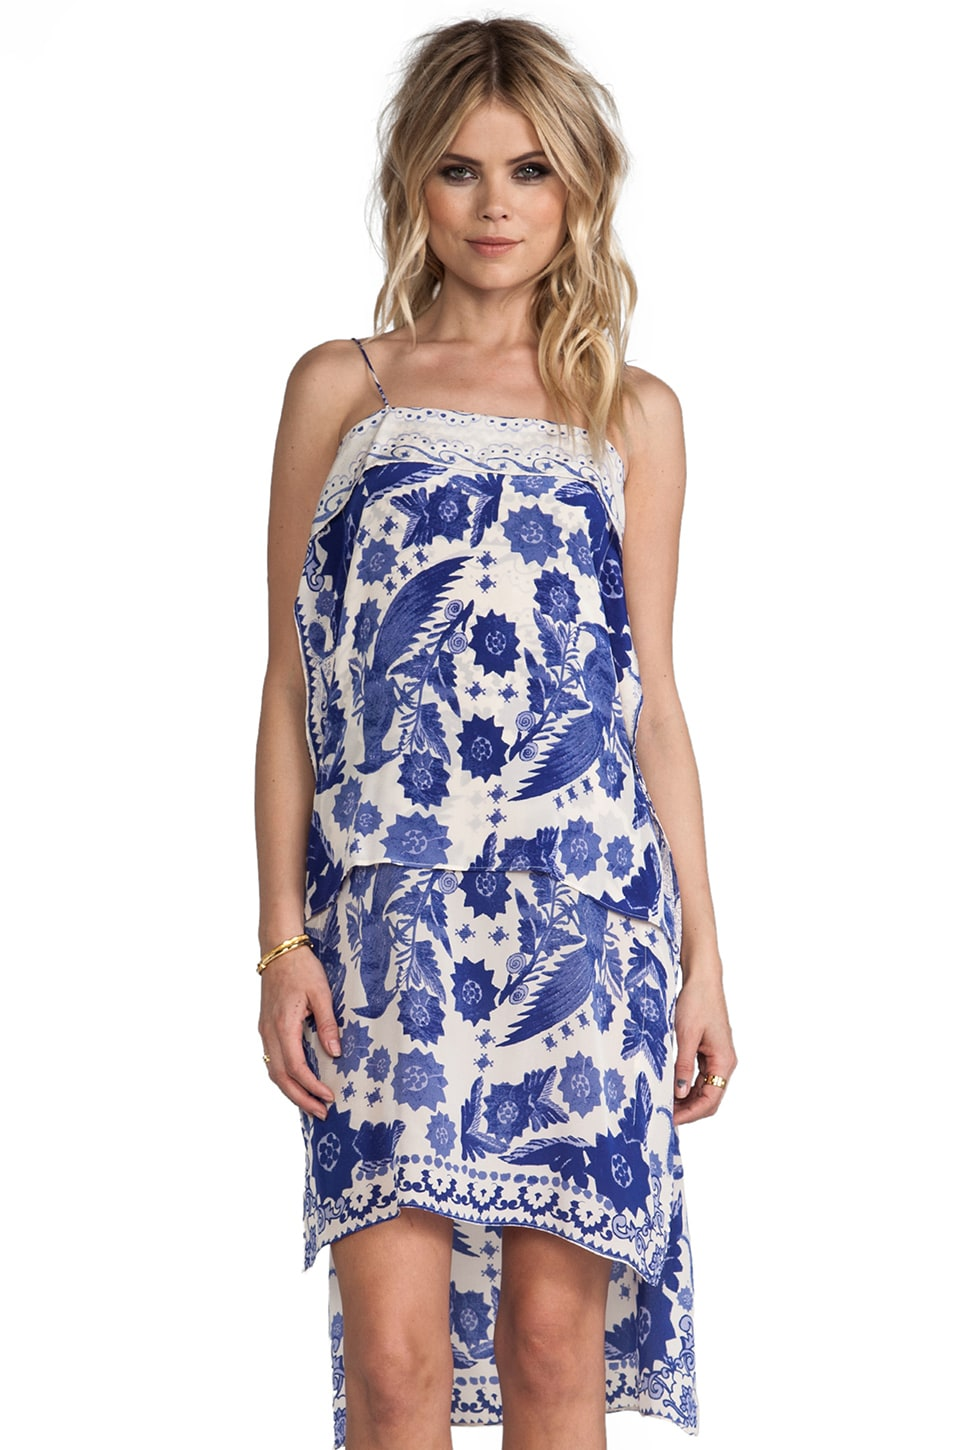 Rebecca Minkoff Yuko Dress in Indigo Blue